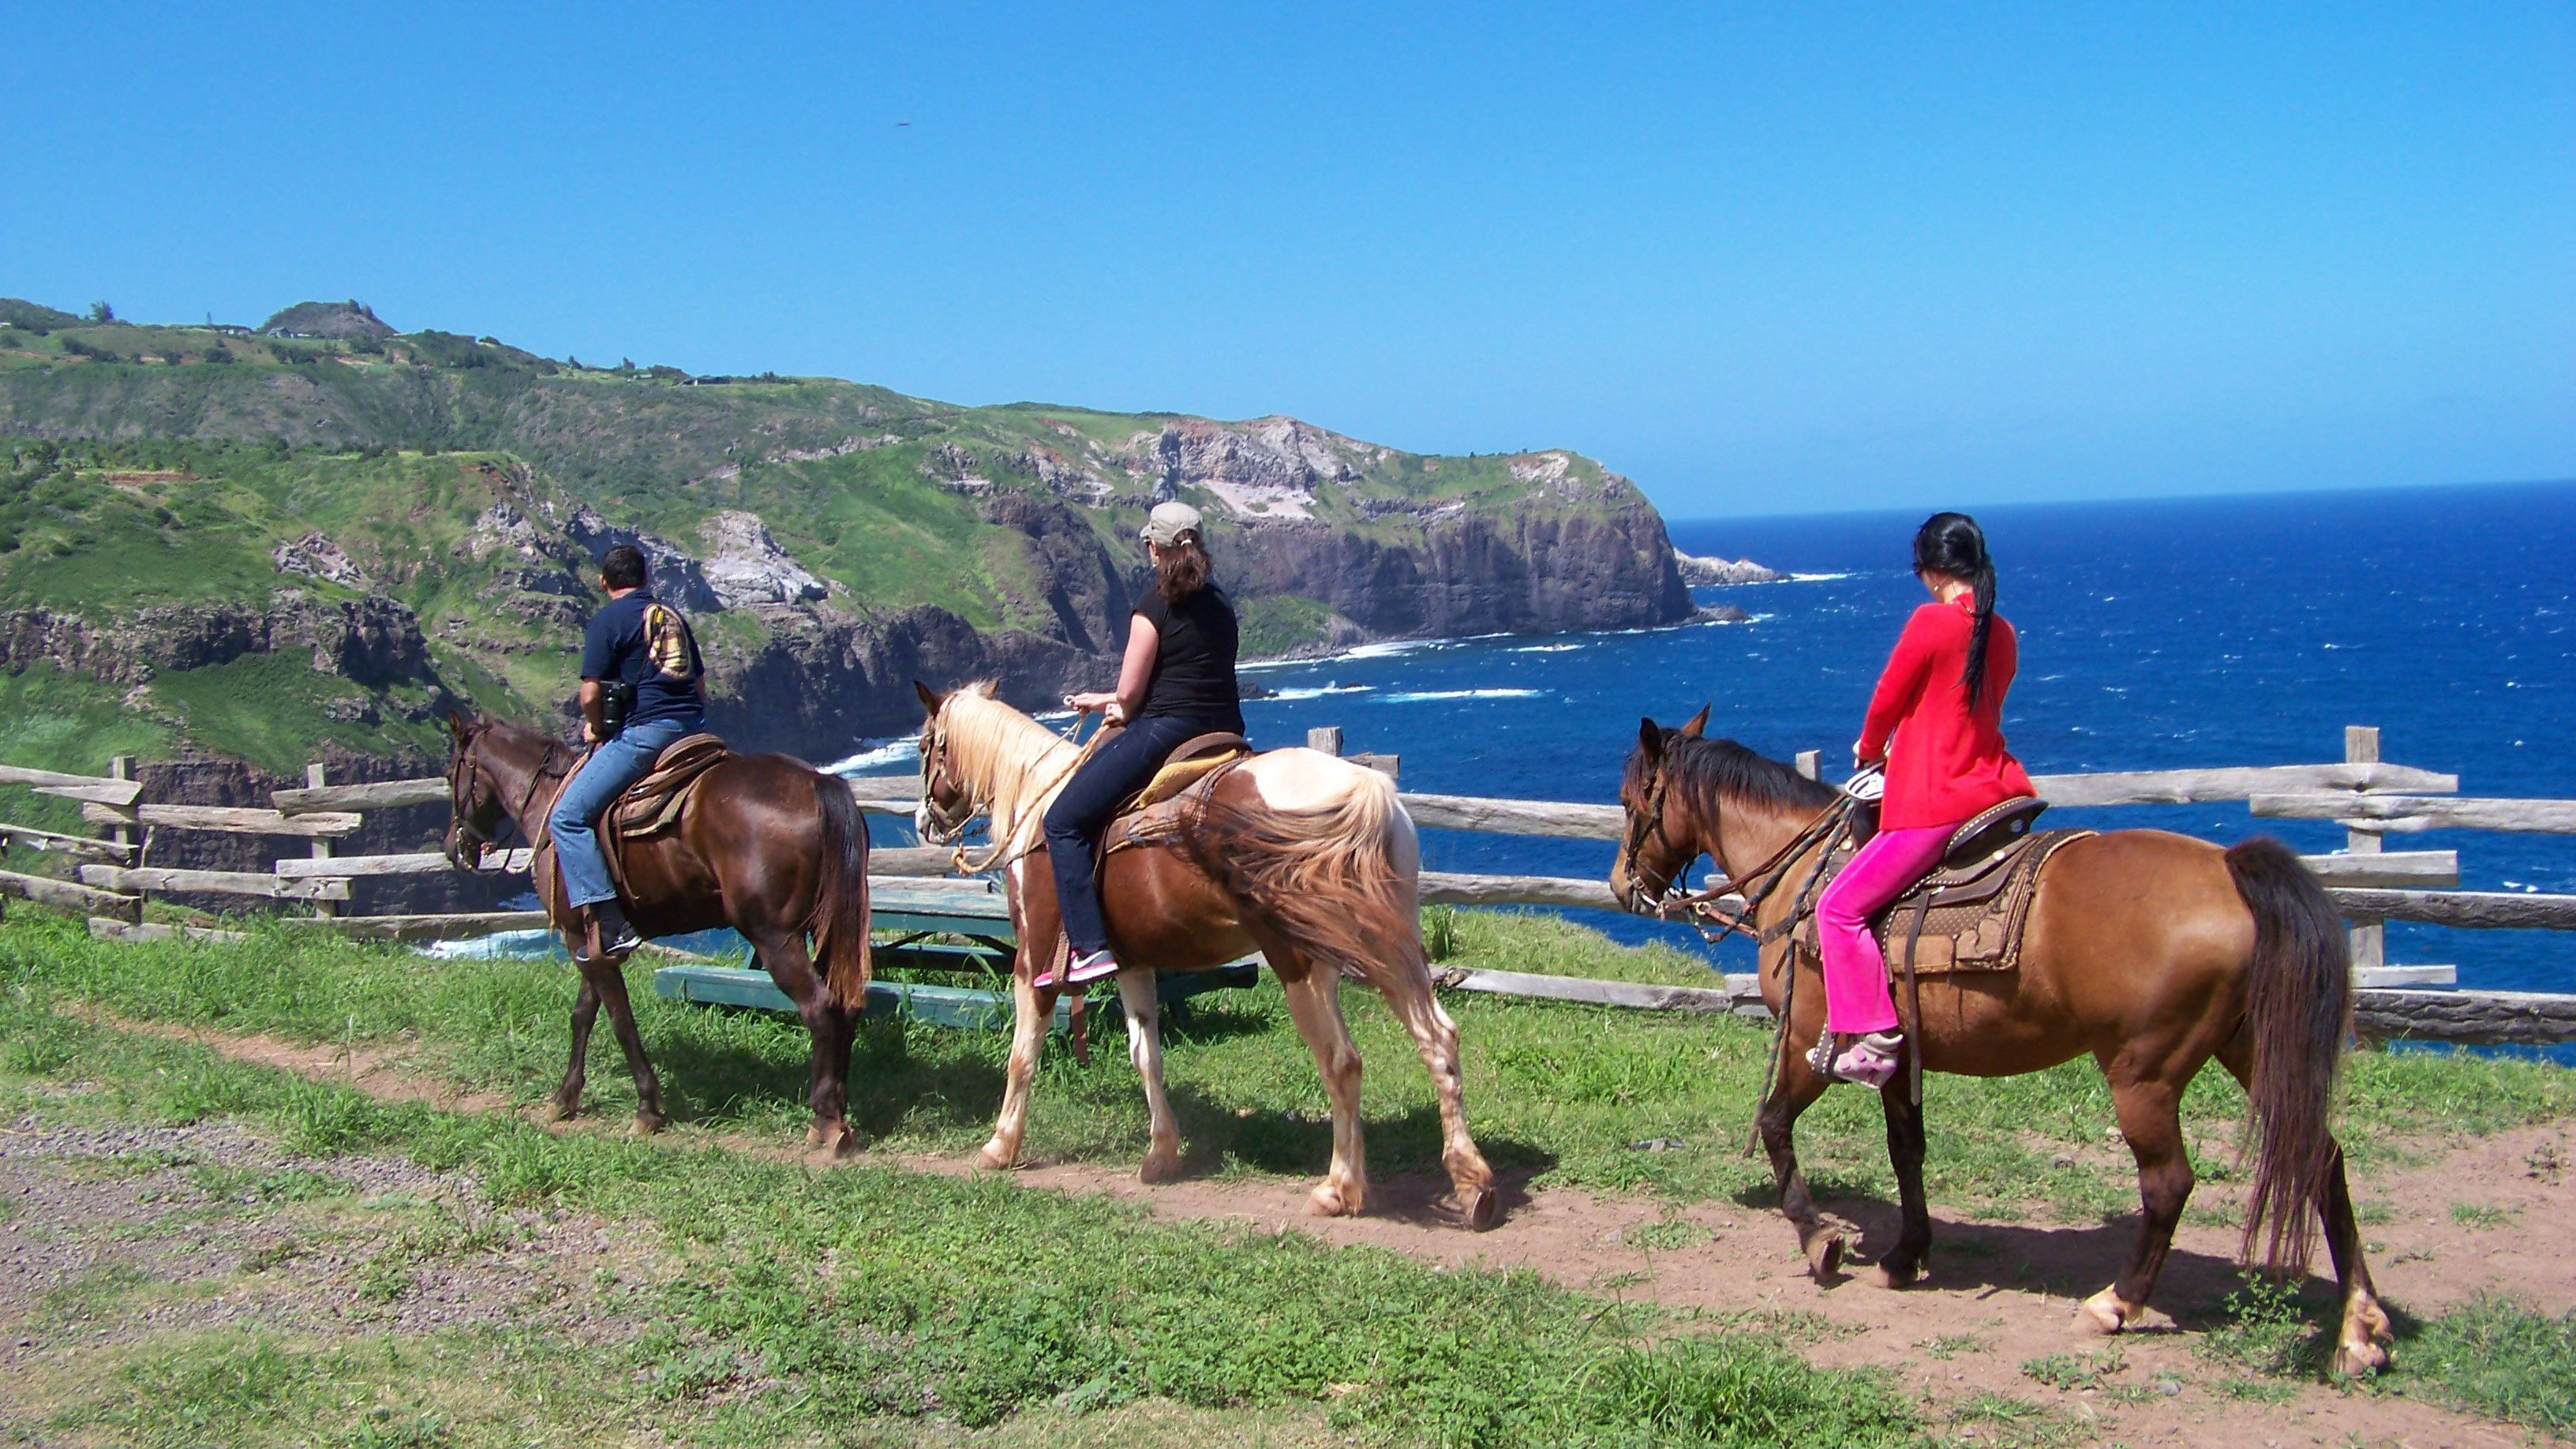 People horseback riding on a trail by the ocean in Maui